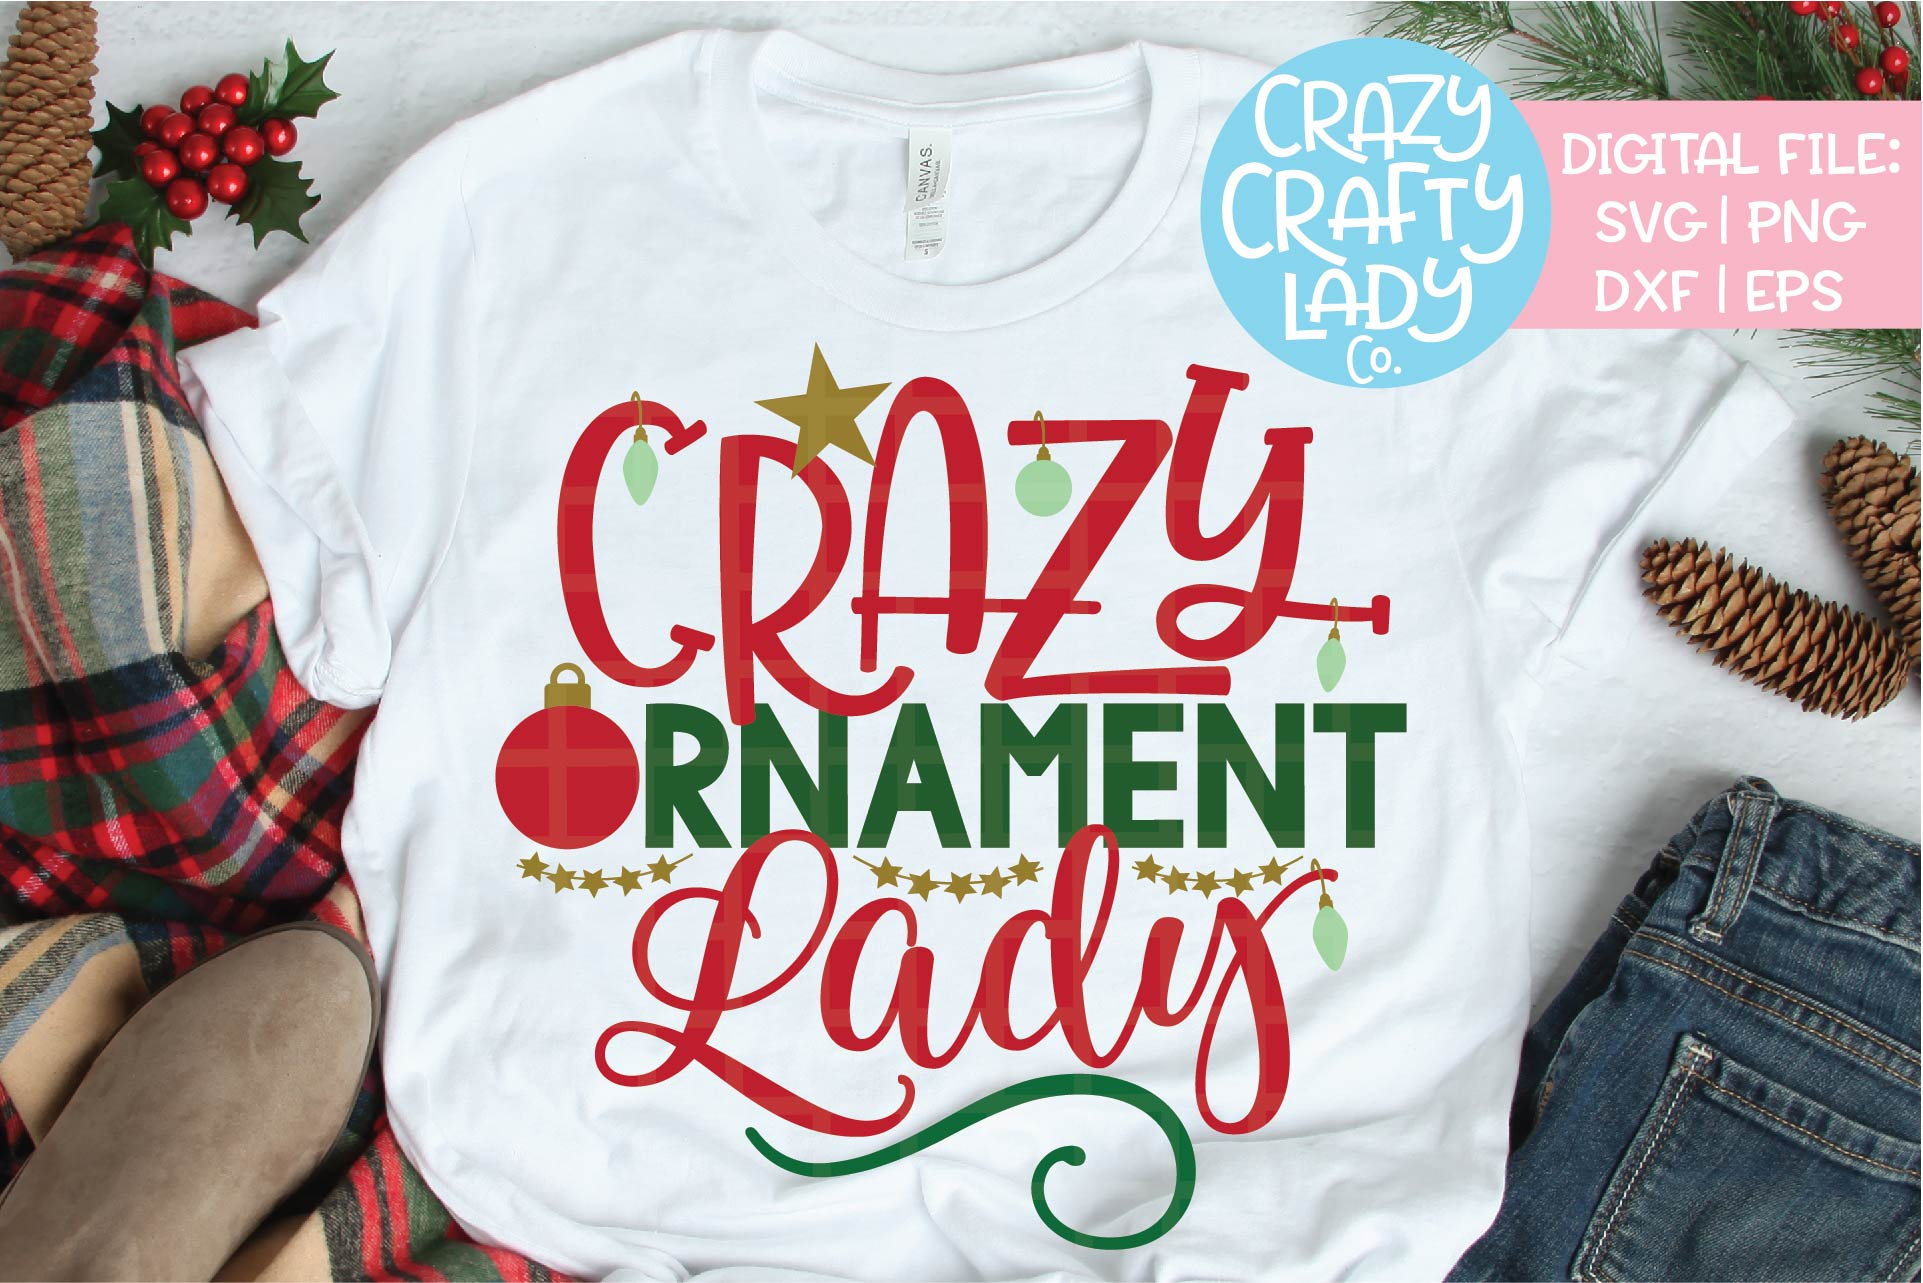 Crazy Ornament Lady SVG DXF EPS PNG Cut File example image 1